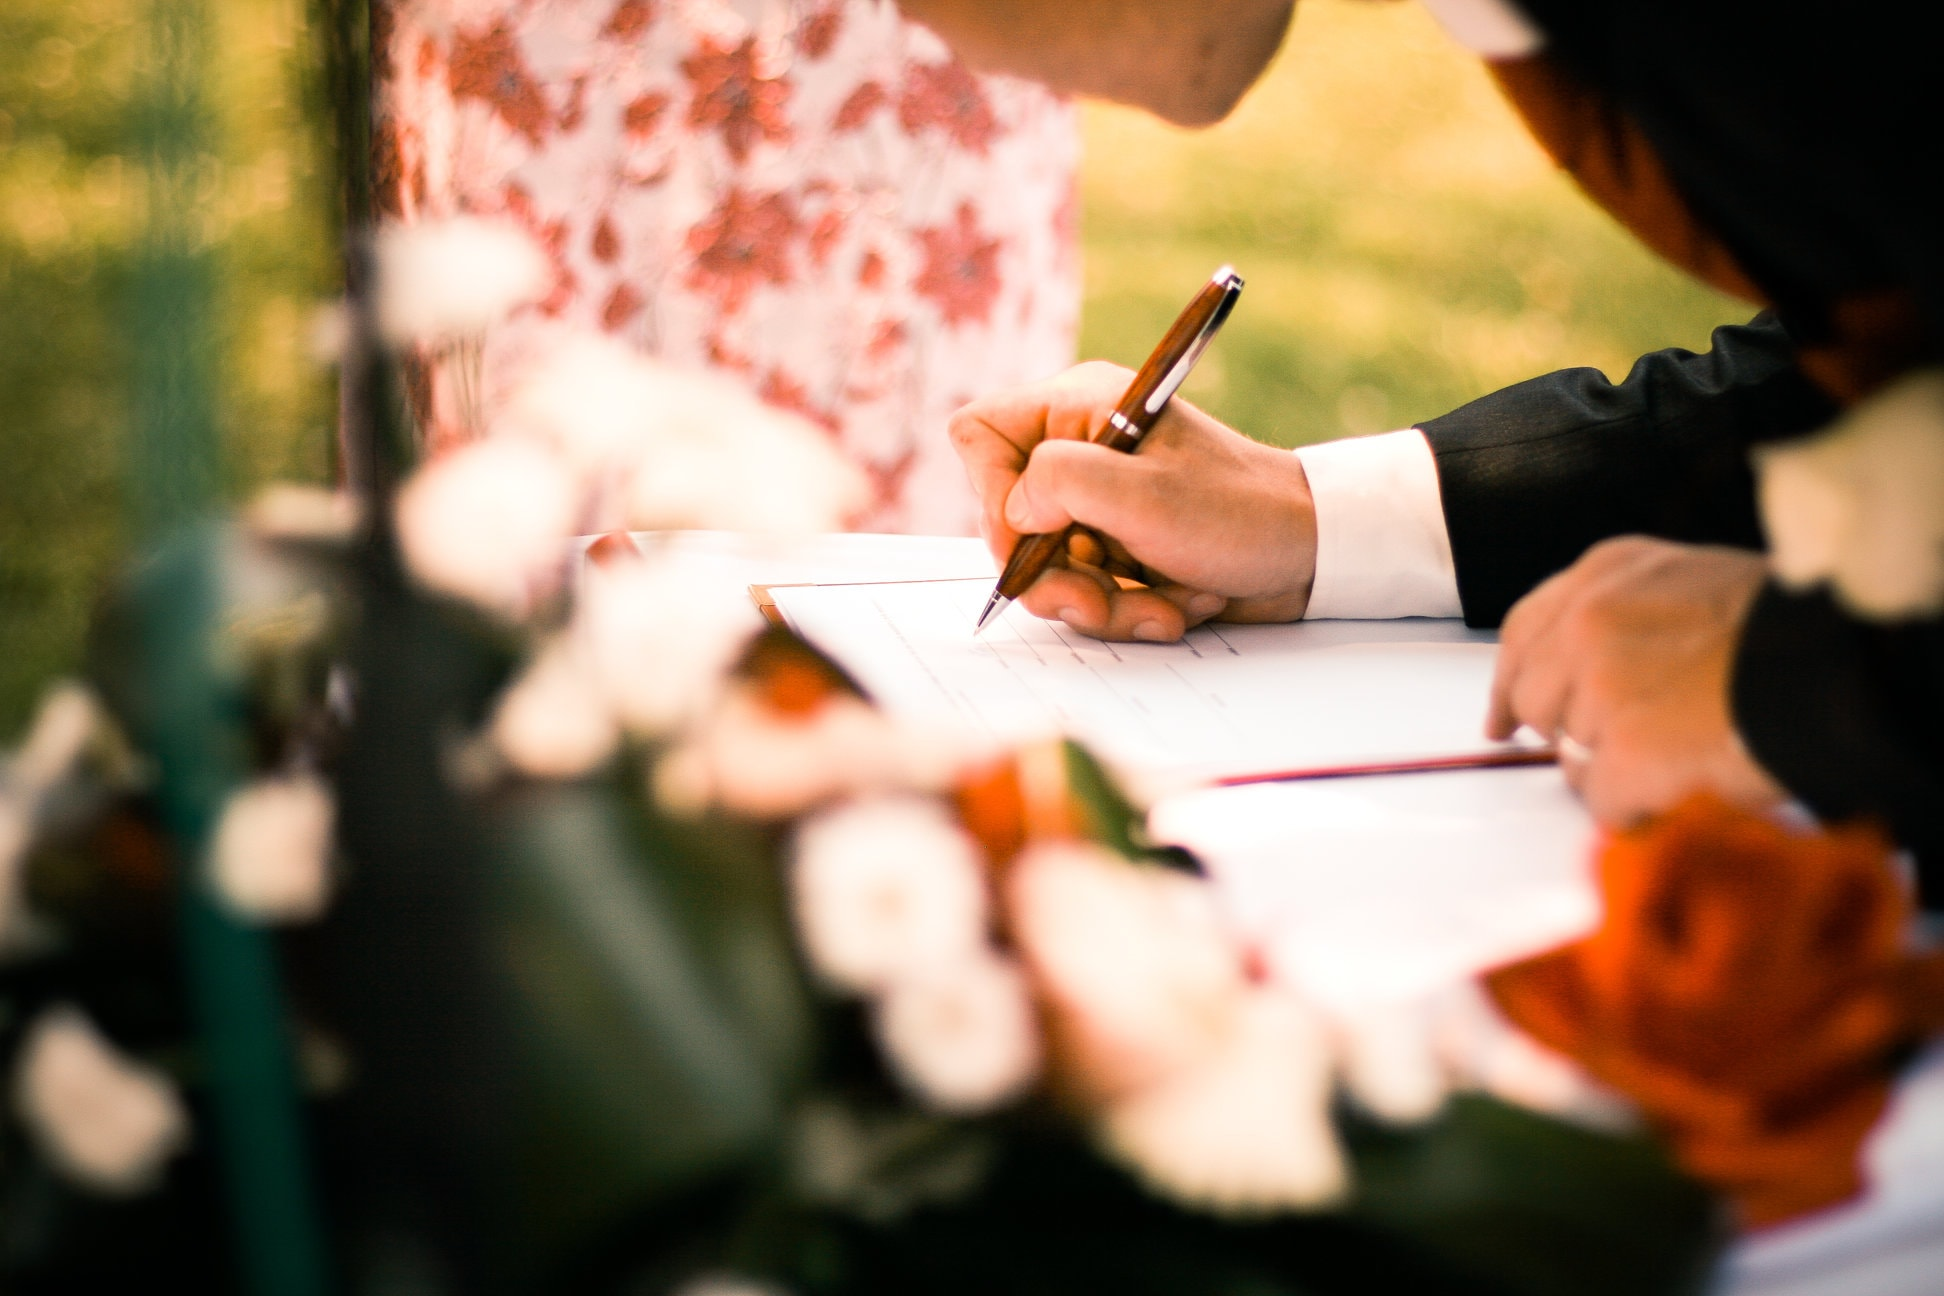 No. 25 Fitzwilliam Place | Signing the Wedding Register